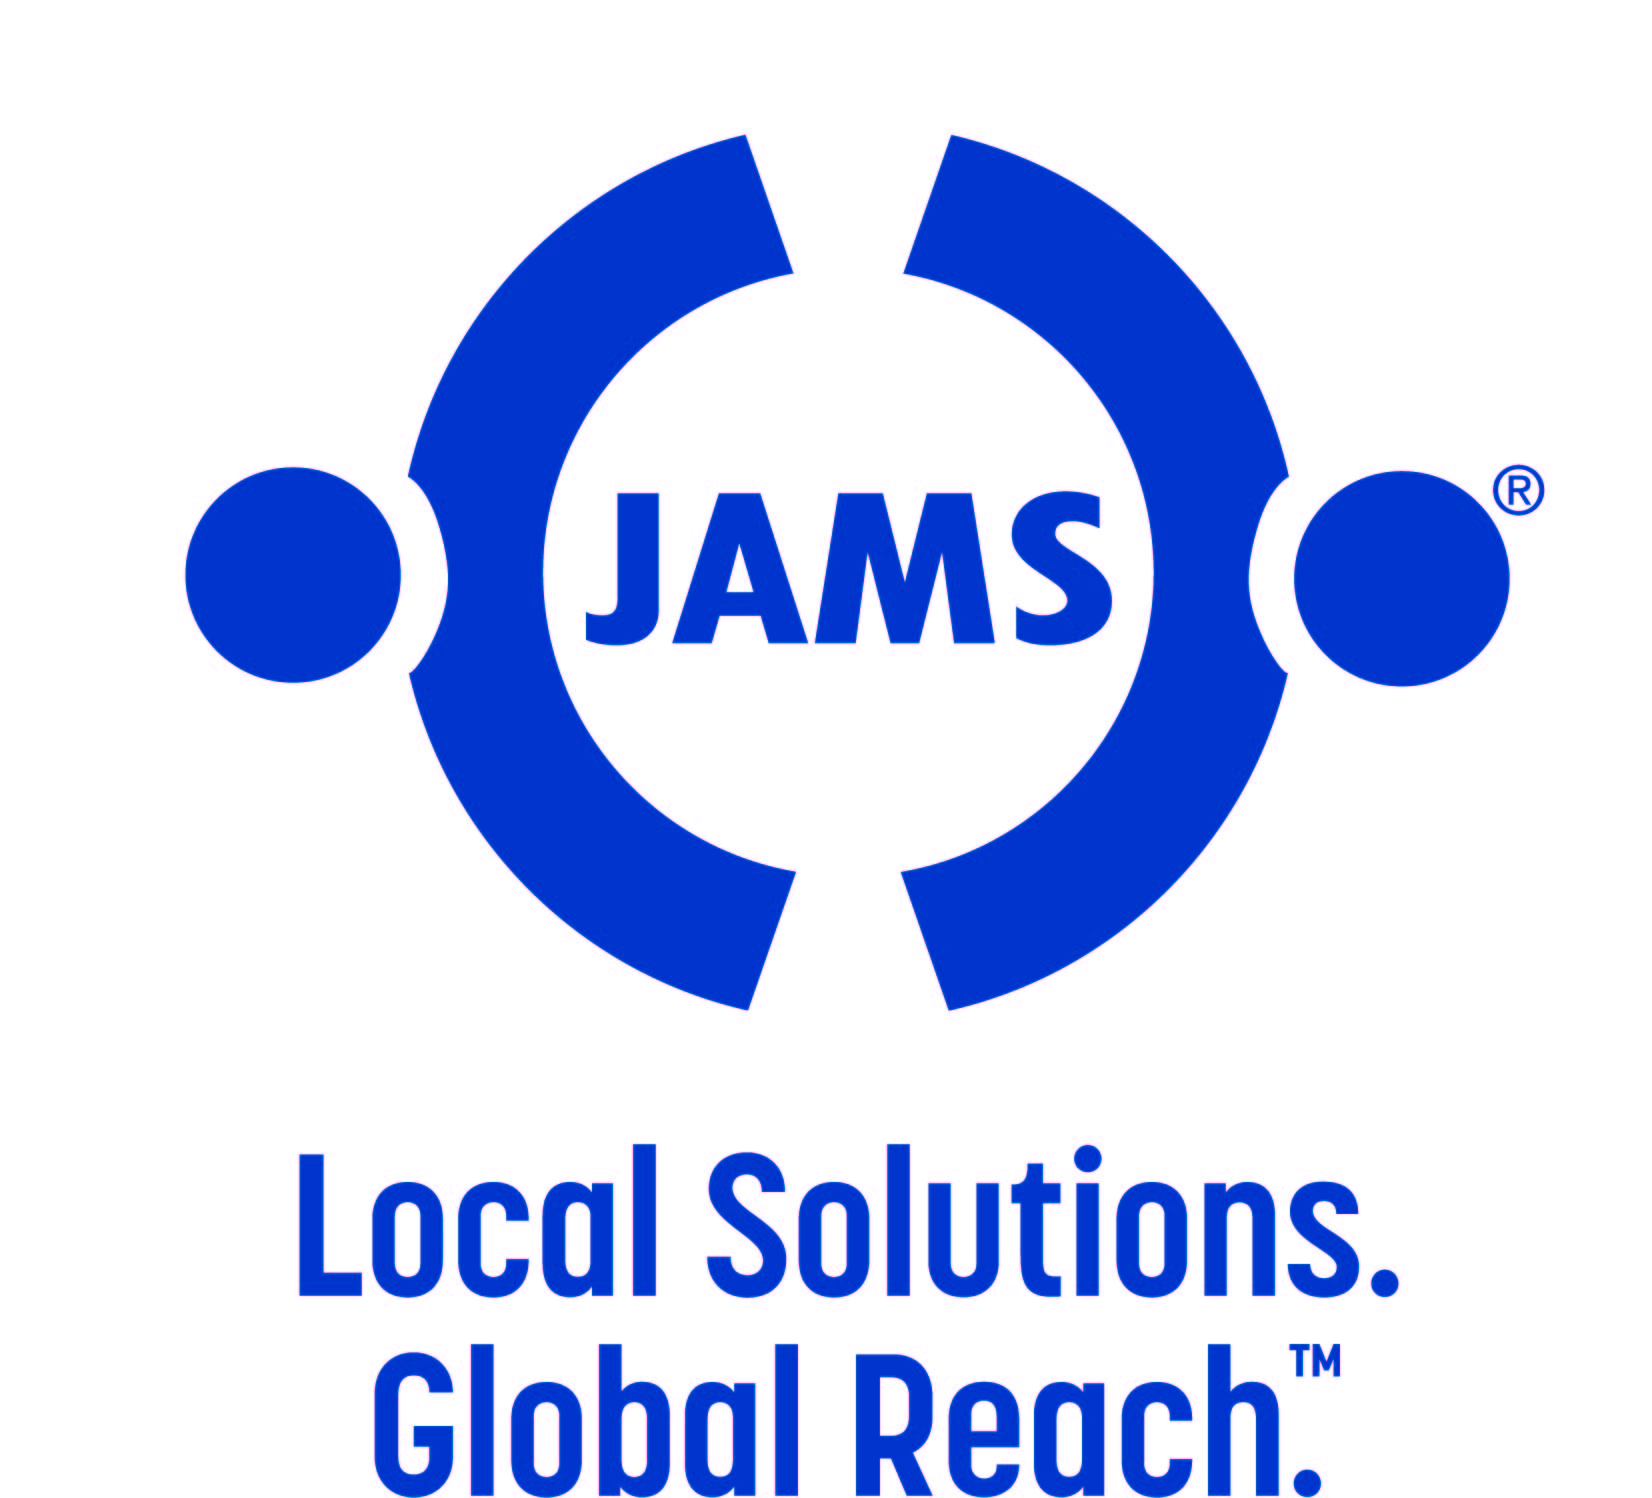 JAMS - Local Solutions. Global Reach.TM